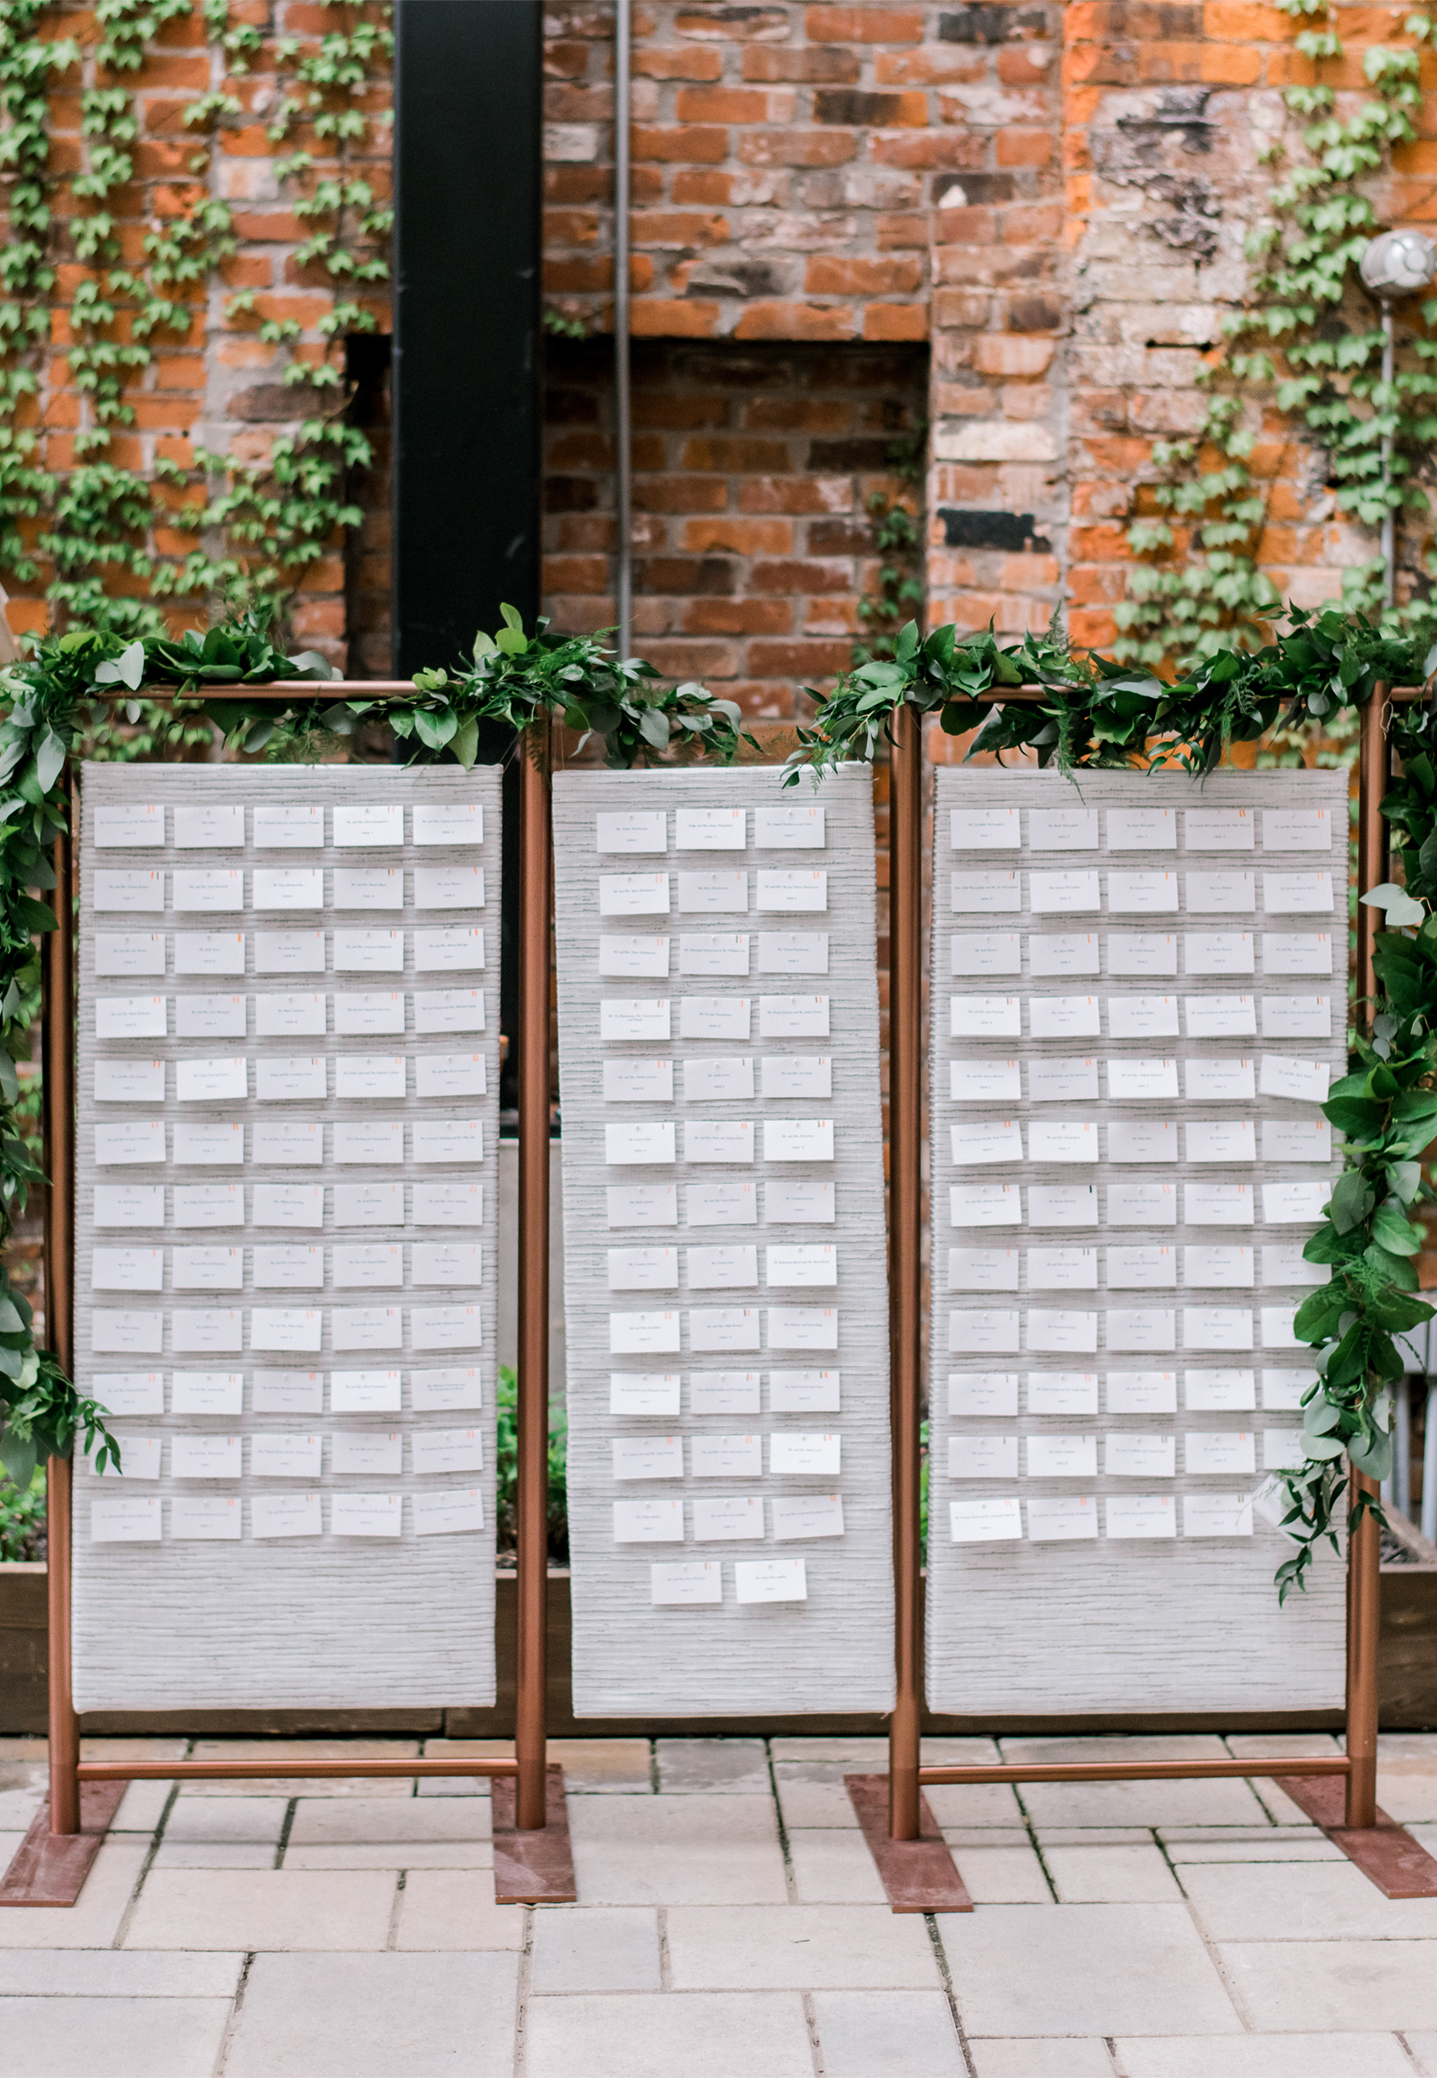 Uniquely made copper frames holding floating escort cards in a free standing display for a spring wedding in the courtyard of Hotel Covington.